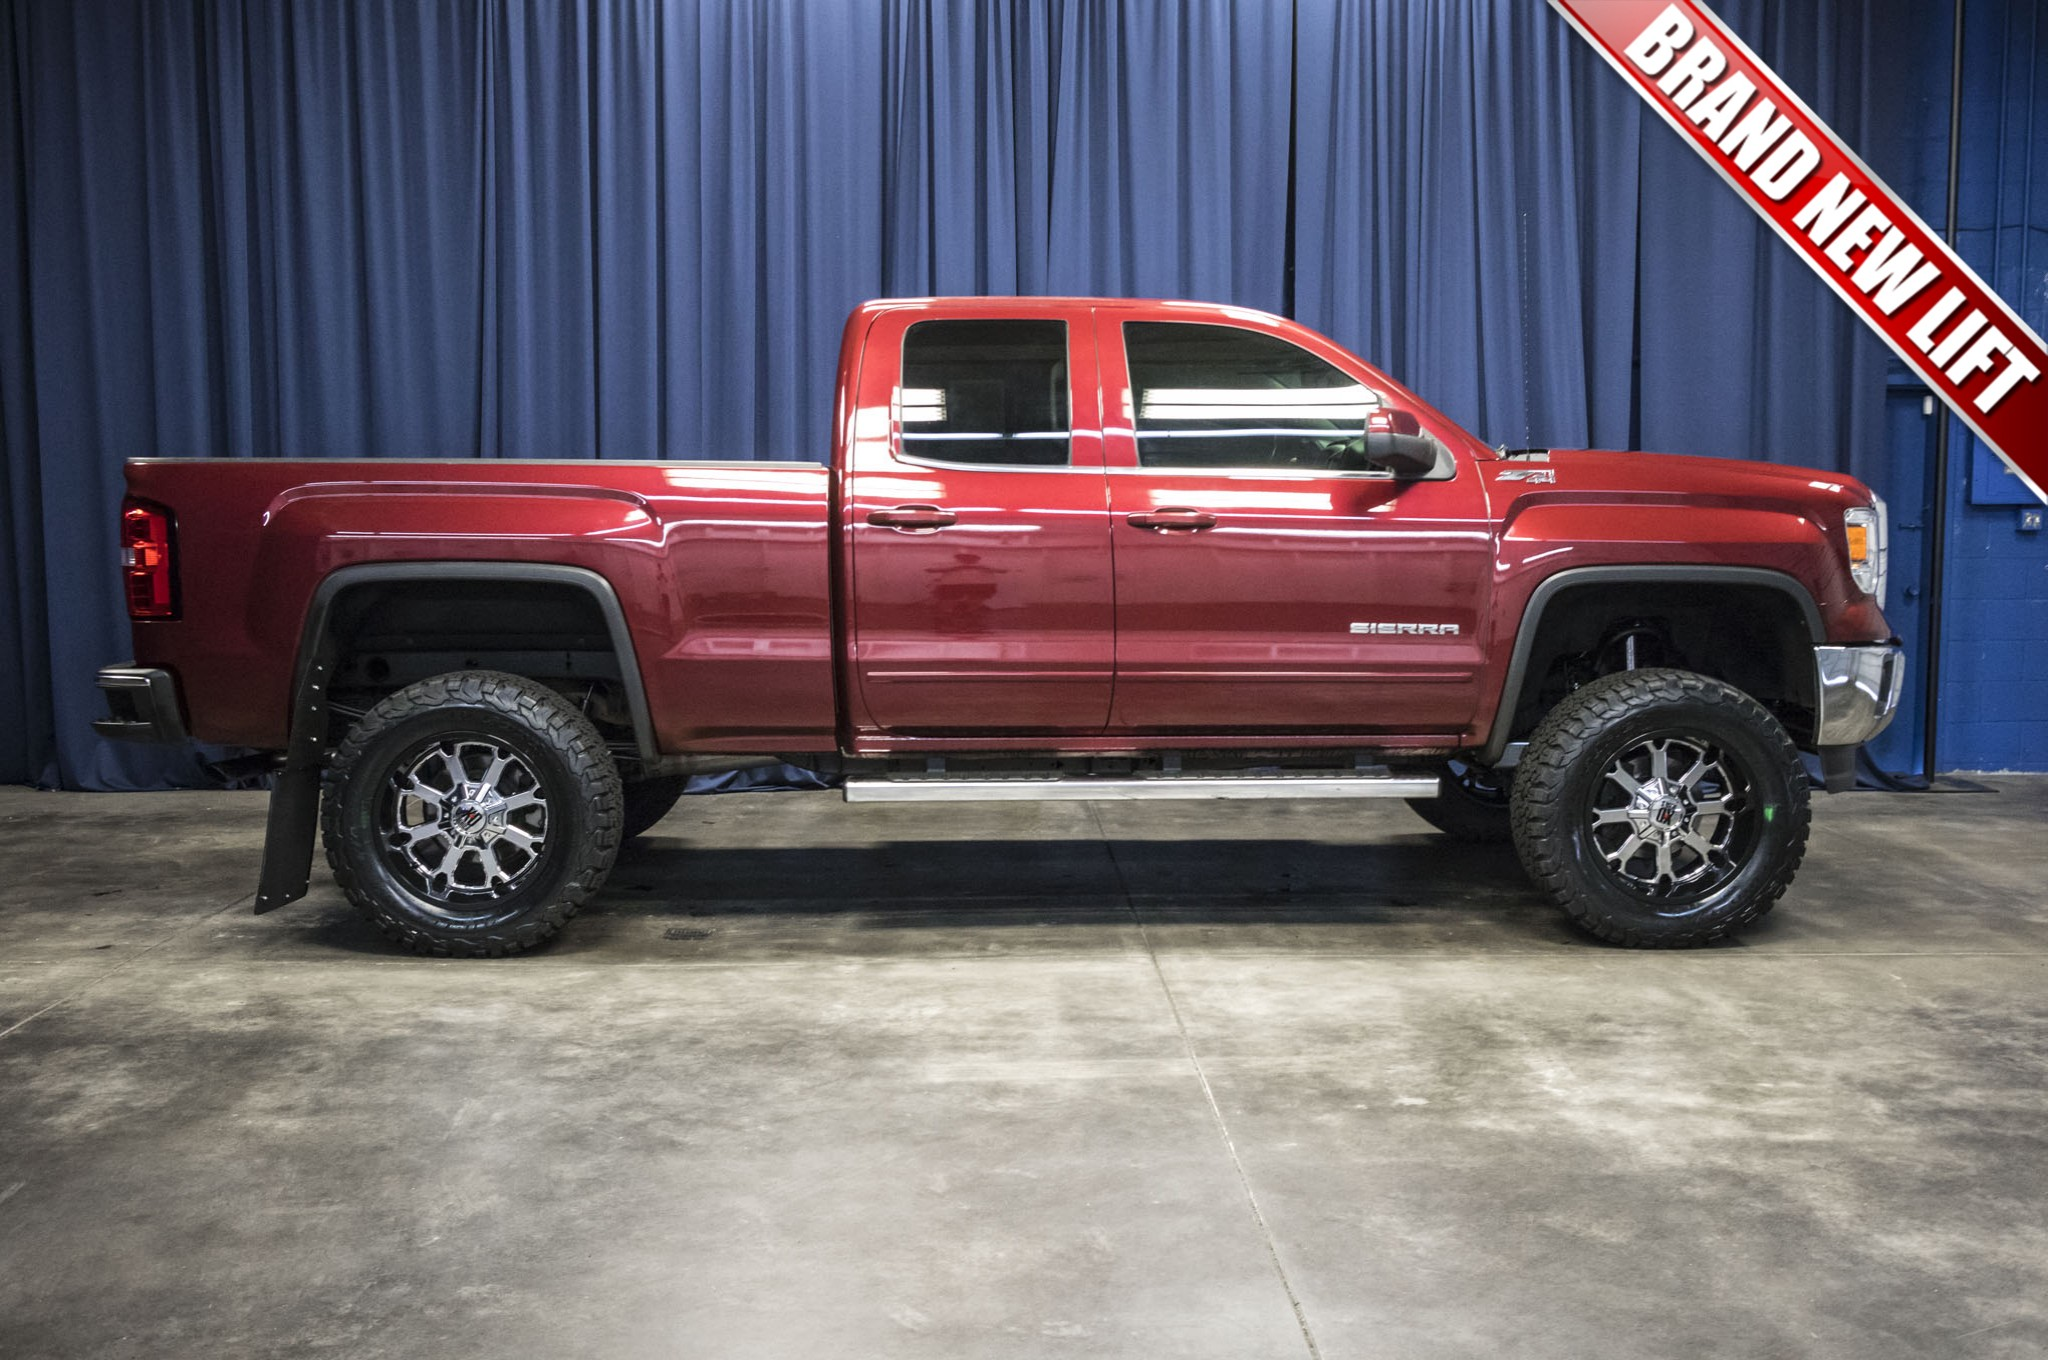 Used Lifted 2014 GMC Sierra 1500 SLE Z71 4x4 Truck For Sale